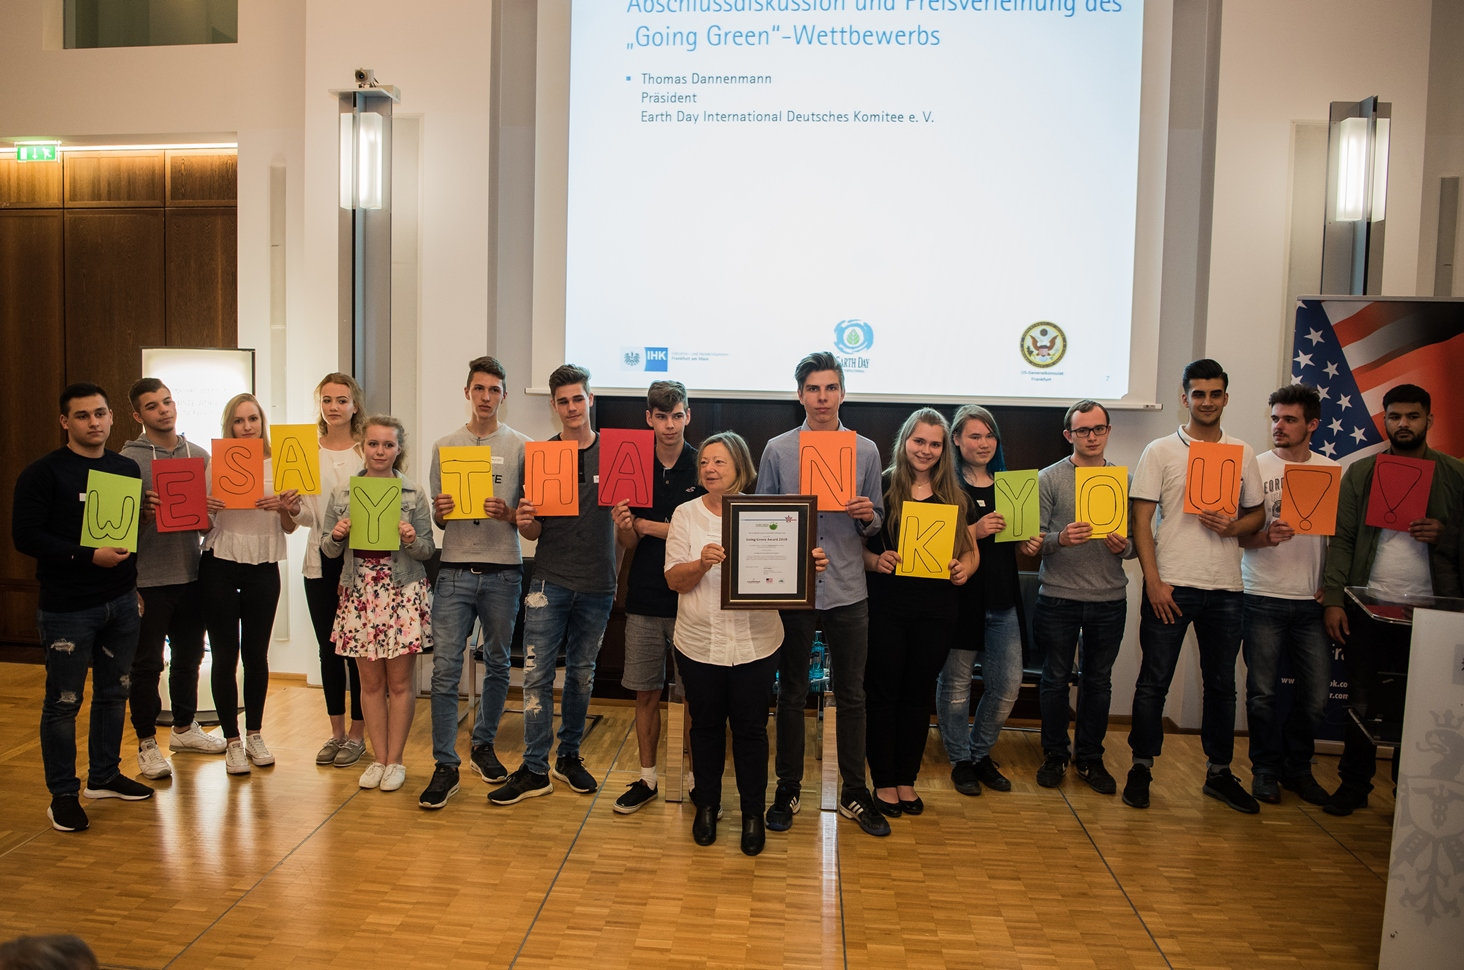 Going Green winners 2018 from Usingen